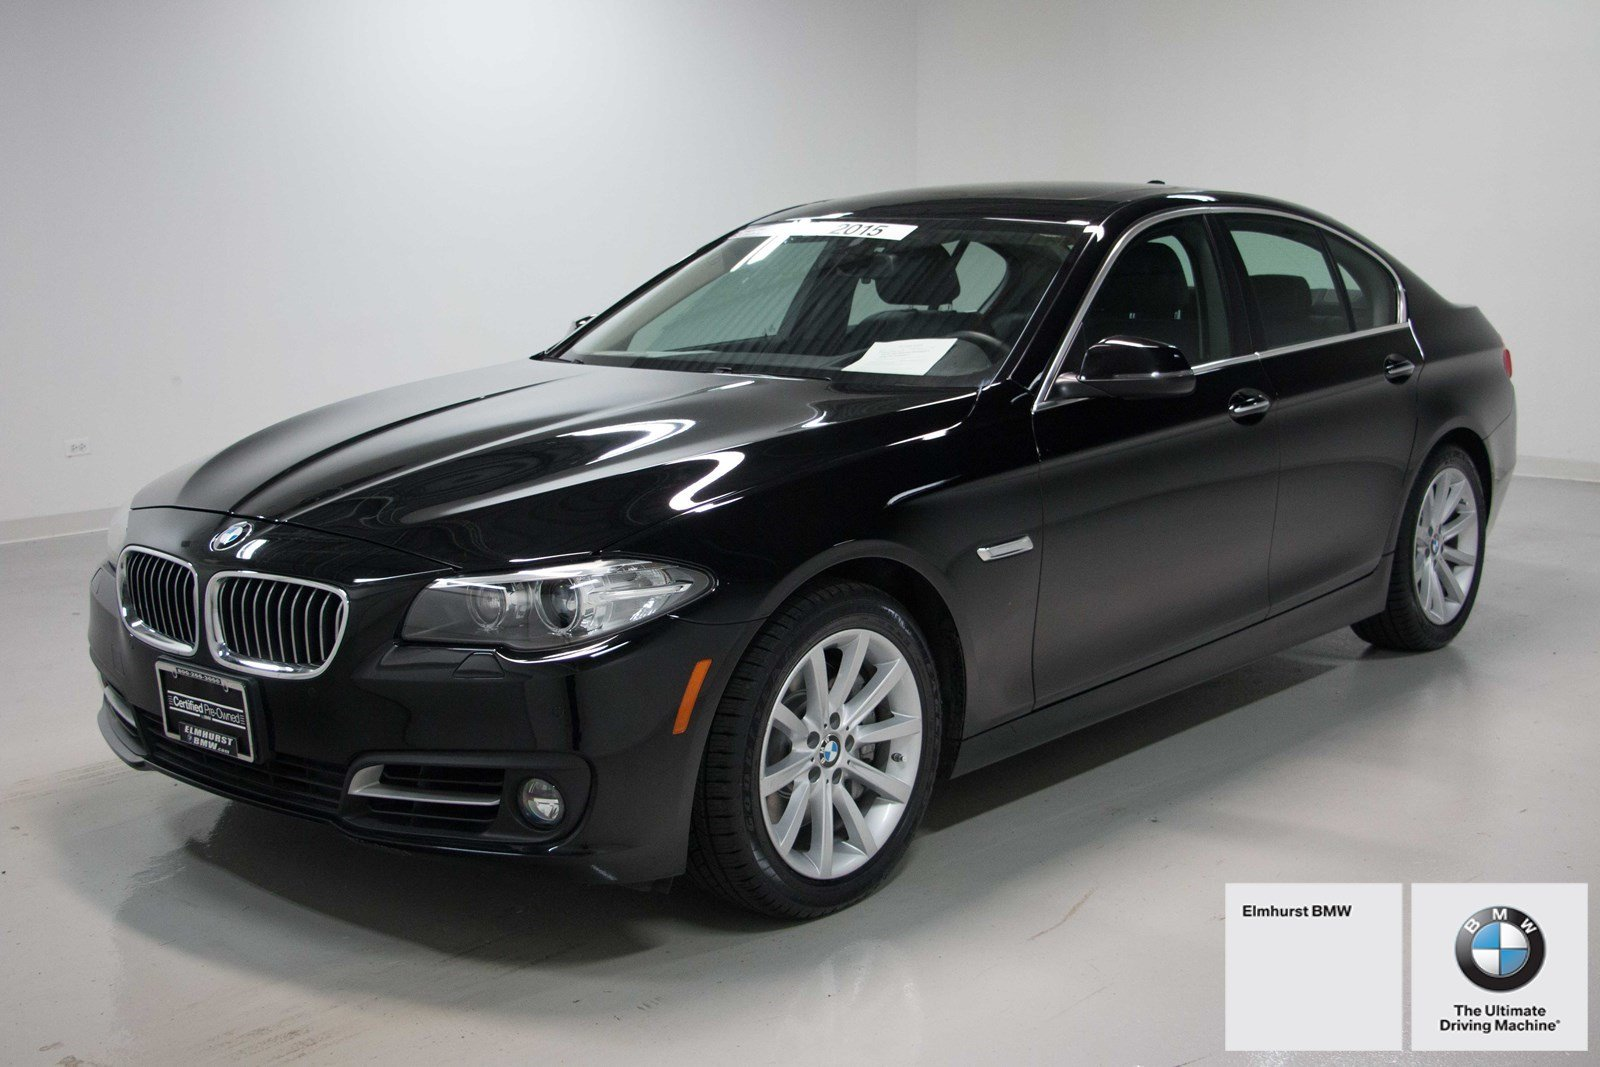 certified pre owned 2015 bmw 5 series 535i xdrive 4dr car in elmhurst b8058a elmhurst bmw. Black Bedroom Furniture Sets. Home Design Ideas